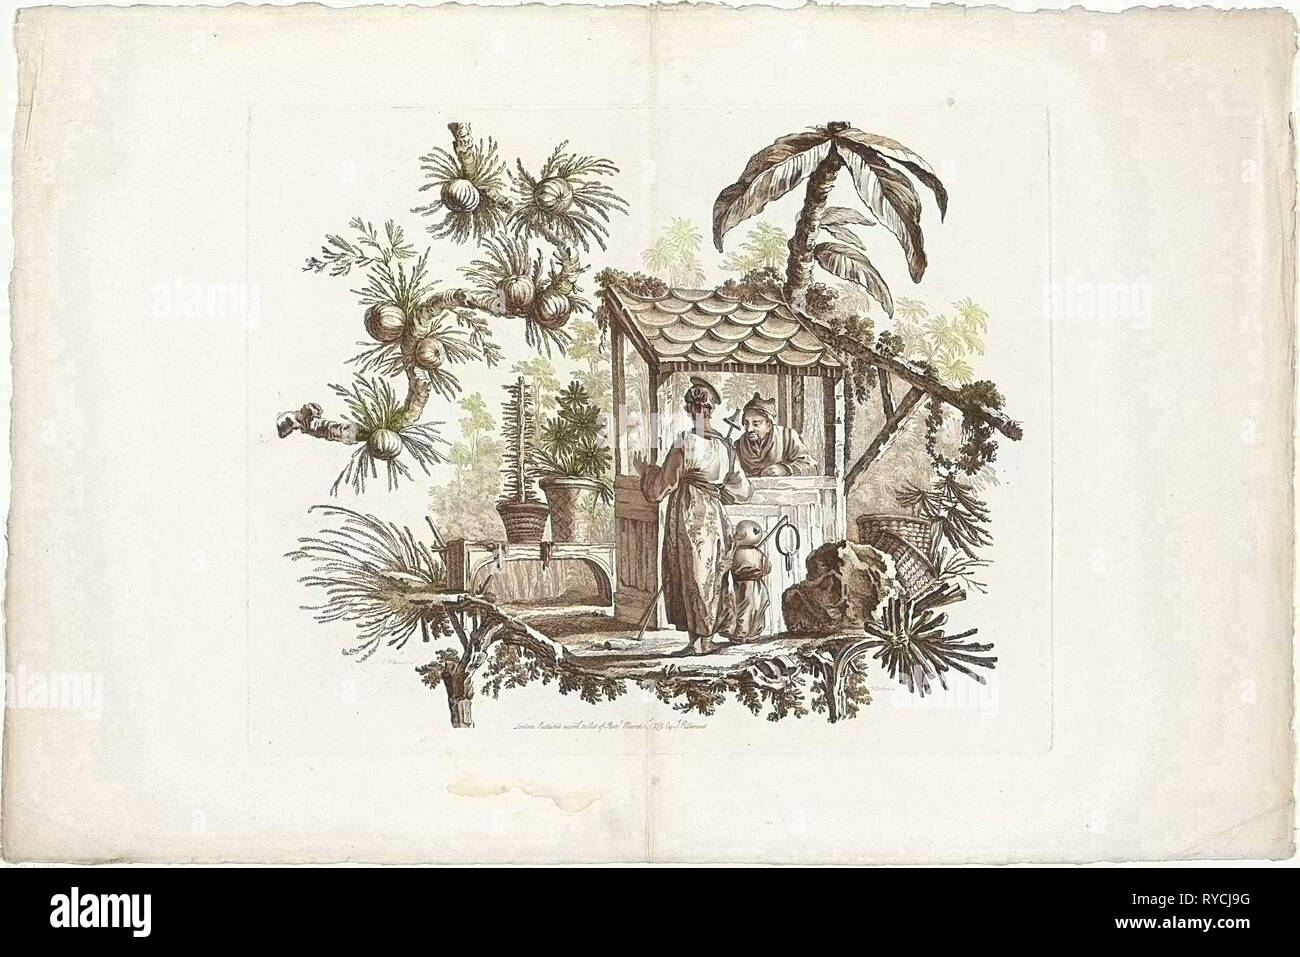 China, Chinese houses and people, I. Pillement inv. F.A. Aveline sc. Londen by I. Pillement, a Paris chez Basan. Francois Antoine Aveline, Jean Baptiste Pillement, Jean Baptiste Pillement, 1728 - 1780 - Stock Image